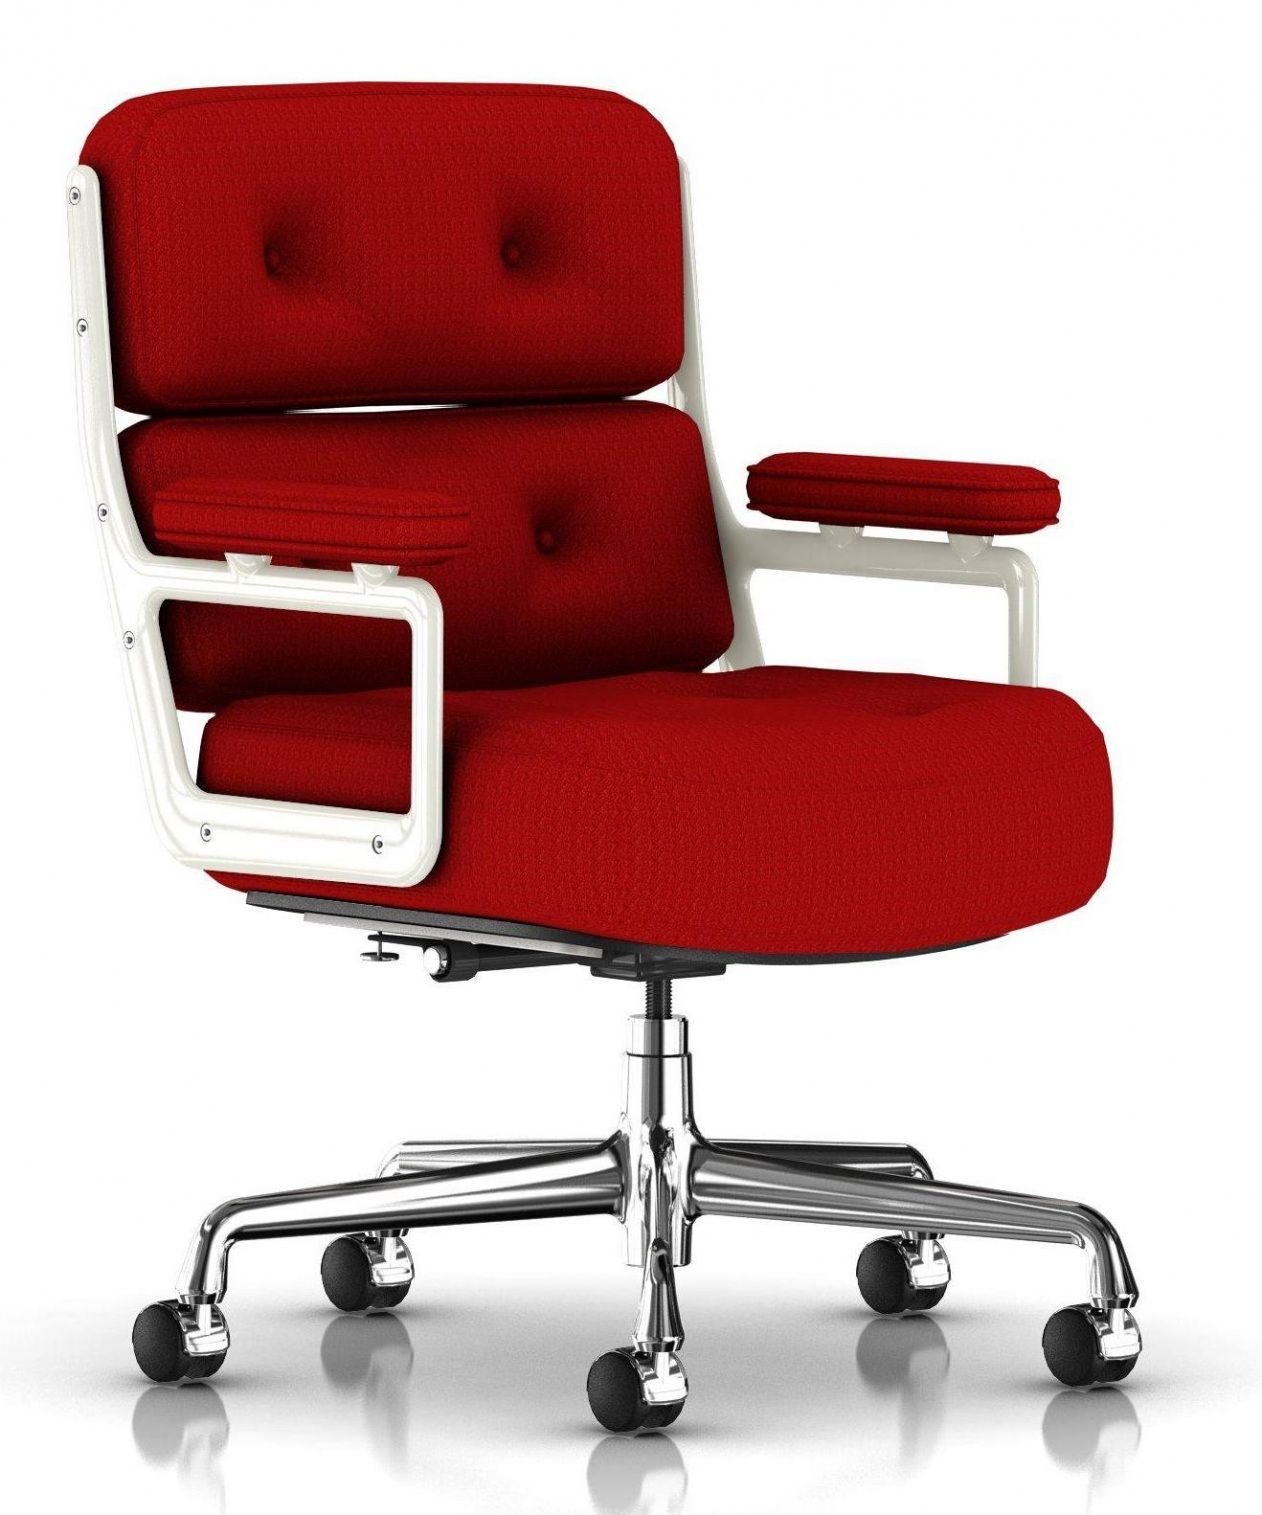 Best Office Chair Staples - Modern Home Office Furniture Check more on pens at staples, paper at staples, desks at staples, mesh chairs at staples, reclining office chair staples, computers at staples, chairs on sale at staples, office mats at staples, office supplies at staples, heavy duty office chairs staples, executive office chairs staples, lockers at staples, chair mats at staples, office chair black friday, best office chair staples, ergonomic chairs at staples, office credenzas at staples, shredders at staples, office chair for fat people, tv stands at staples,